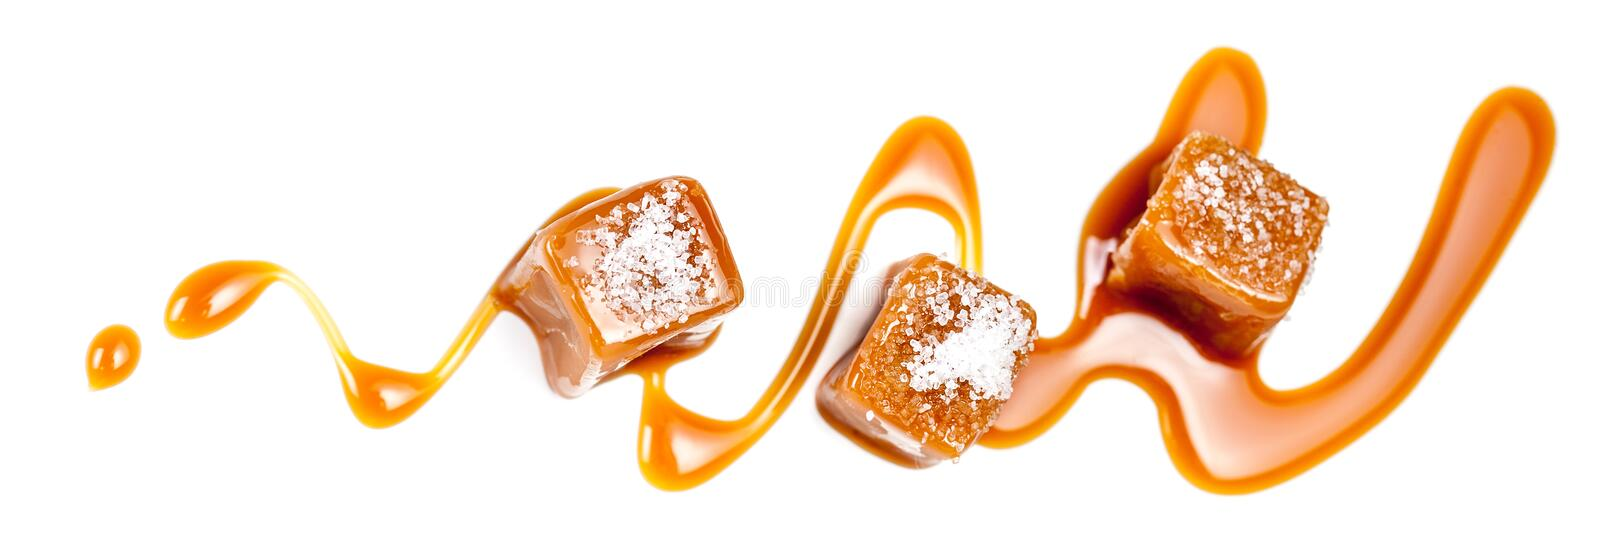 Homemade salted caramel pieces isolated on white background. Golden Butterscotch toffee candy caramels macro. Homemade salted caramel pieces isolated on white royalty free stock image